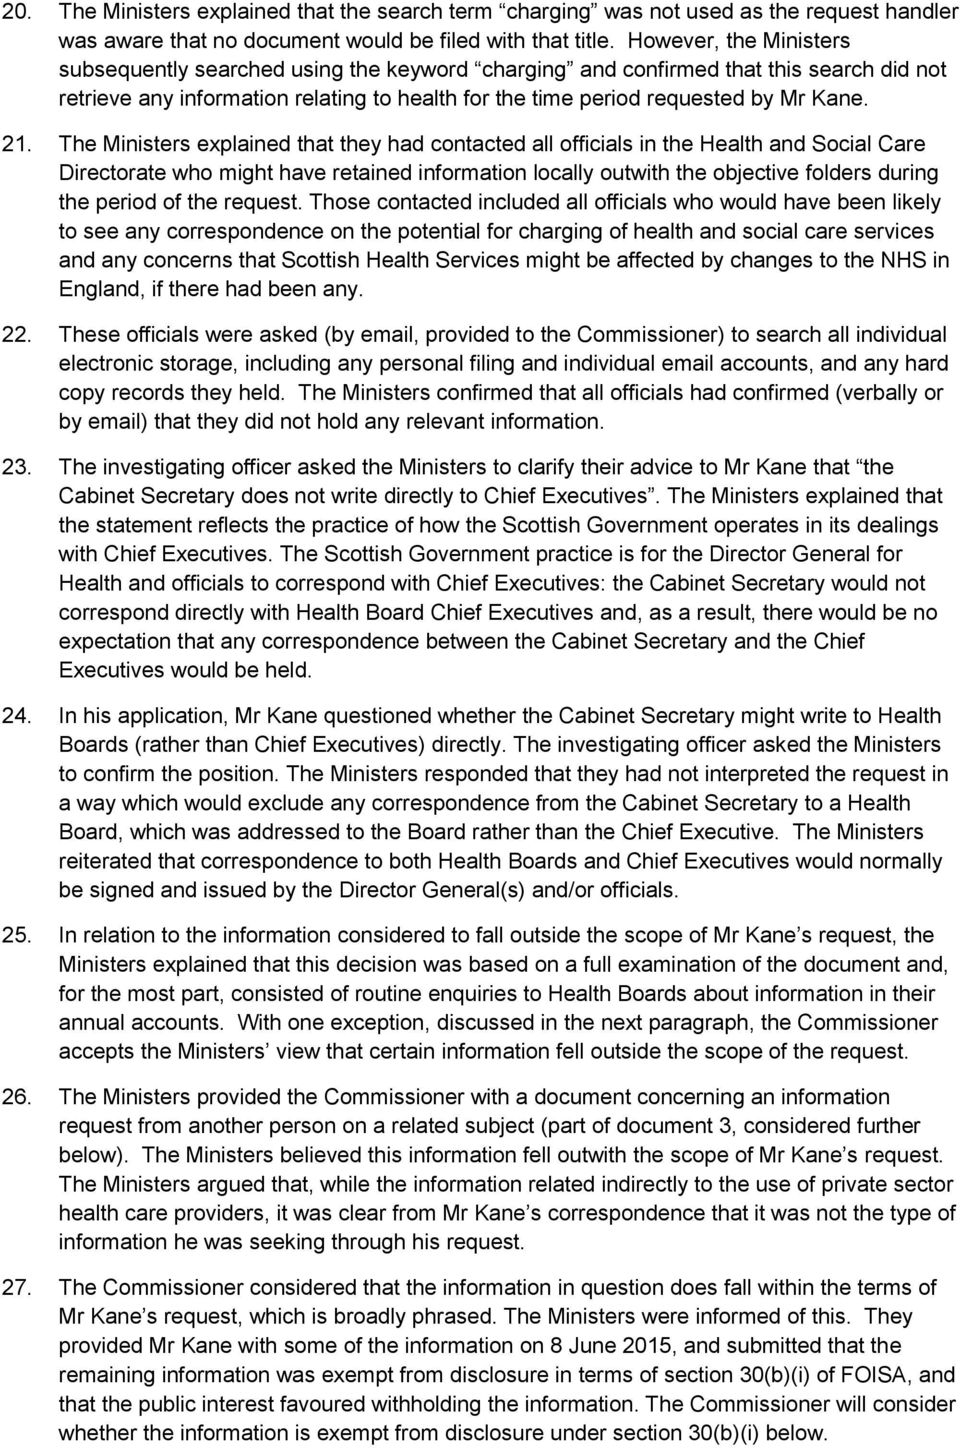 The Ministers explained that they had contacted all officials in the Health and Social Care Directorate who might have retained information locally outwith the objective folders during the period of